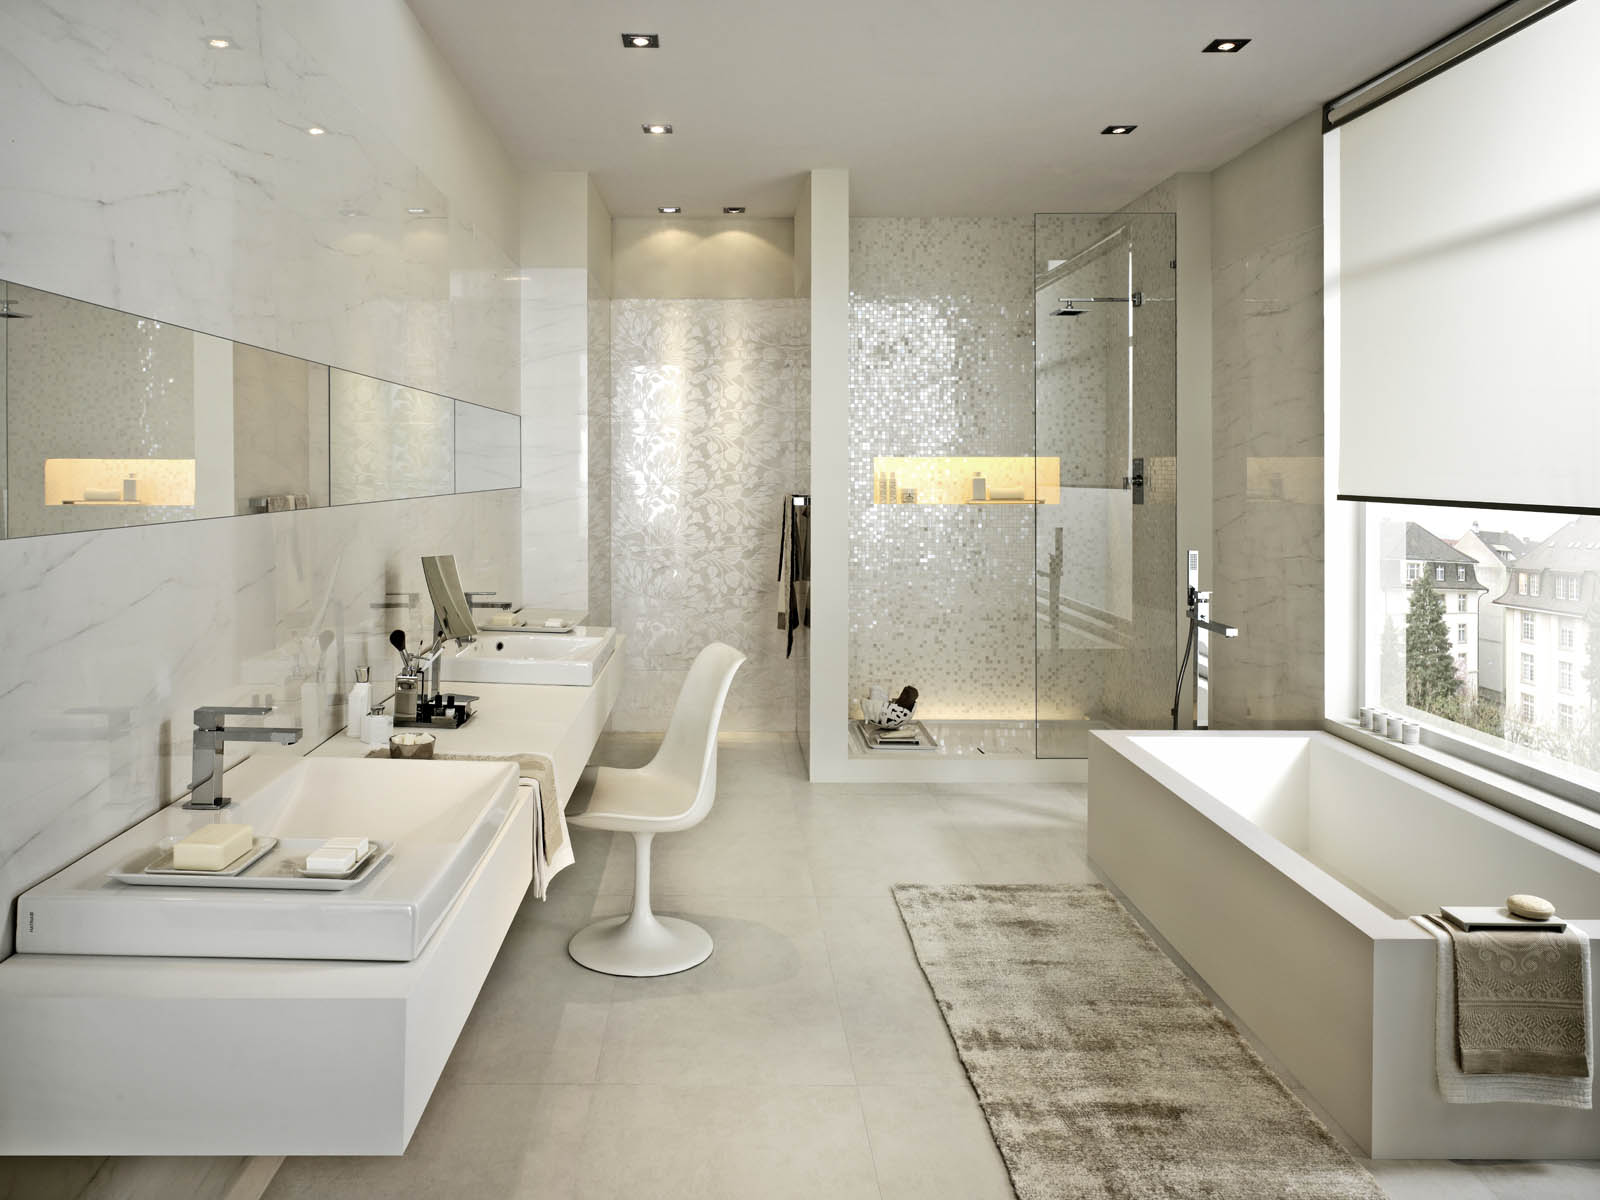 Bathroom flooring ceramic and porcelain stoneware marazzi Marazzi tile